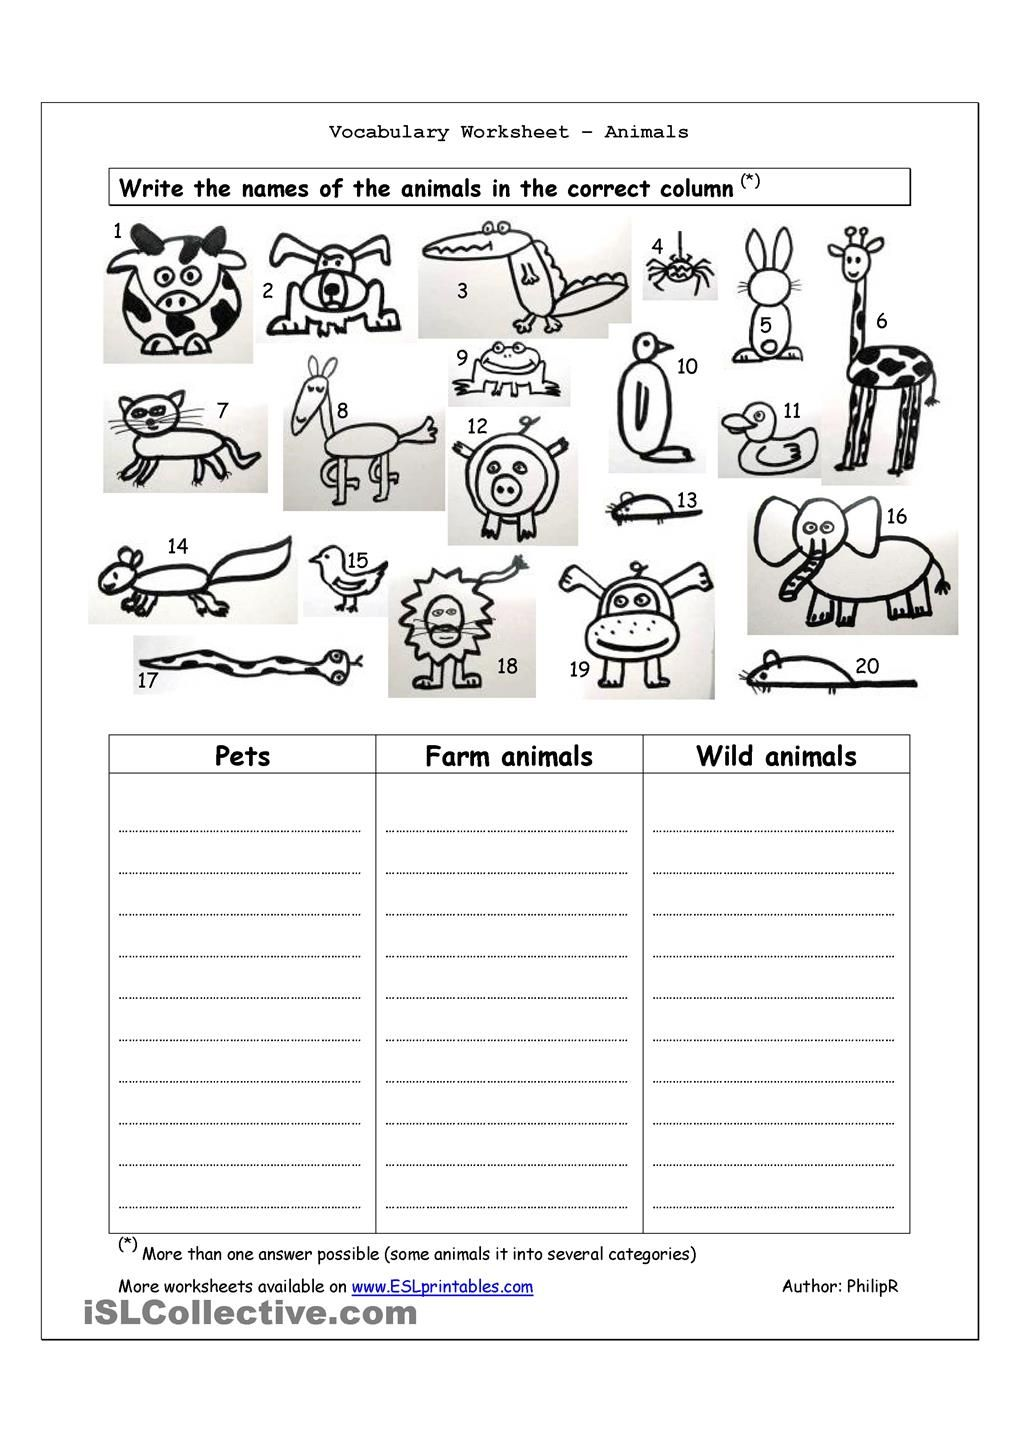 Worksheet Vocabulary Enrichment Worksheets 1000 images about english 4th grade on pinterest vocabulary worksheets all me and student centered resources